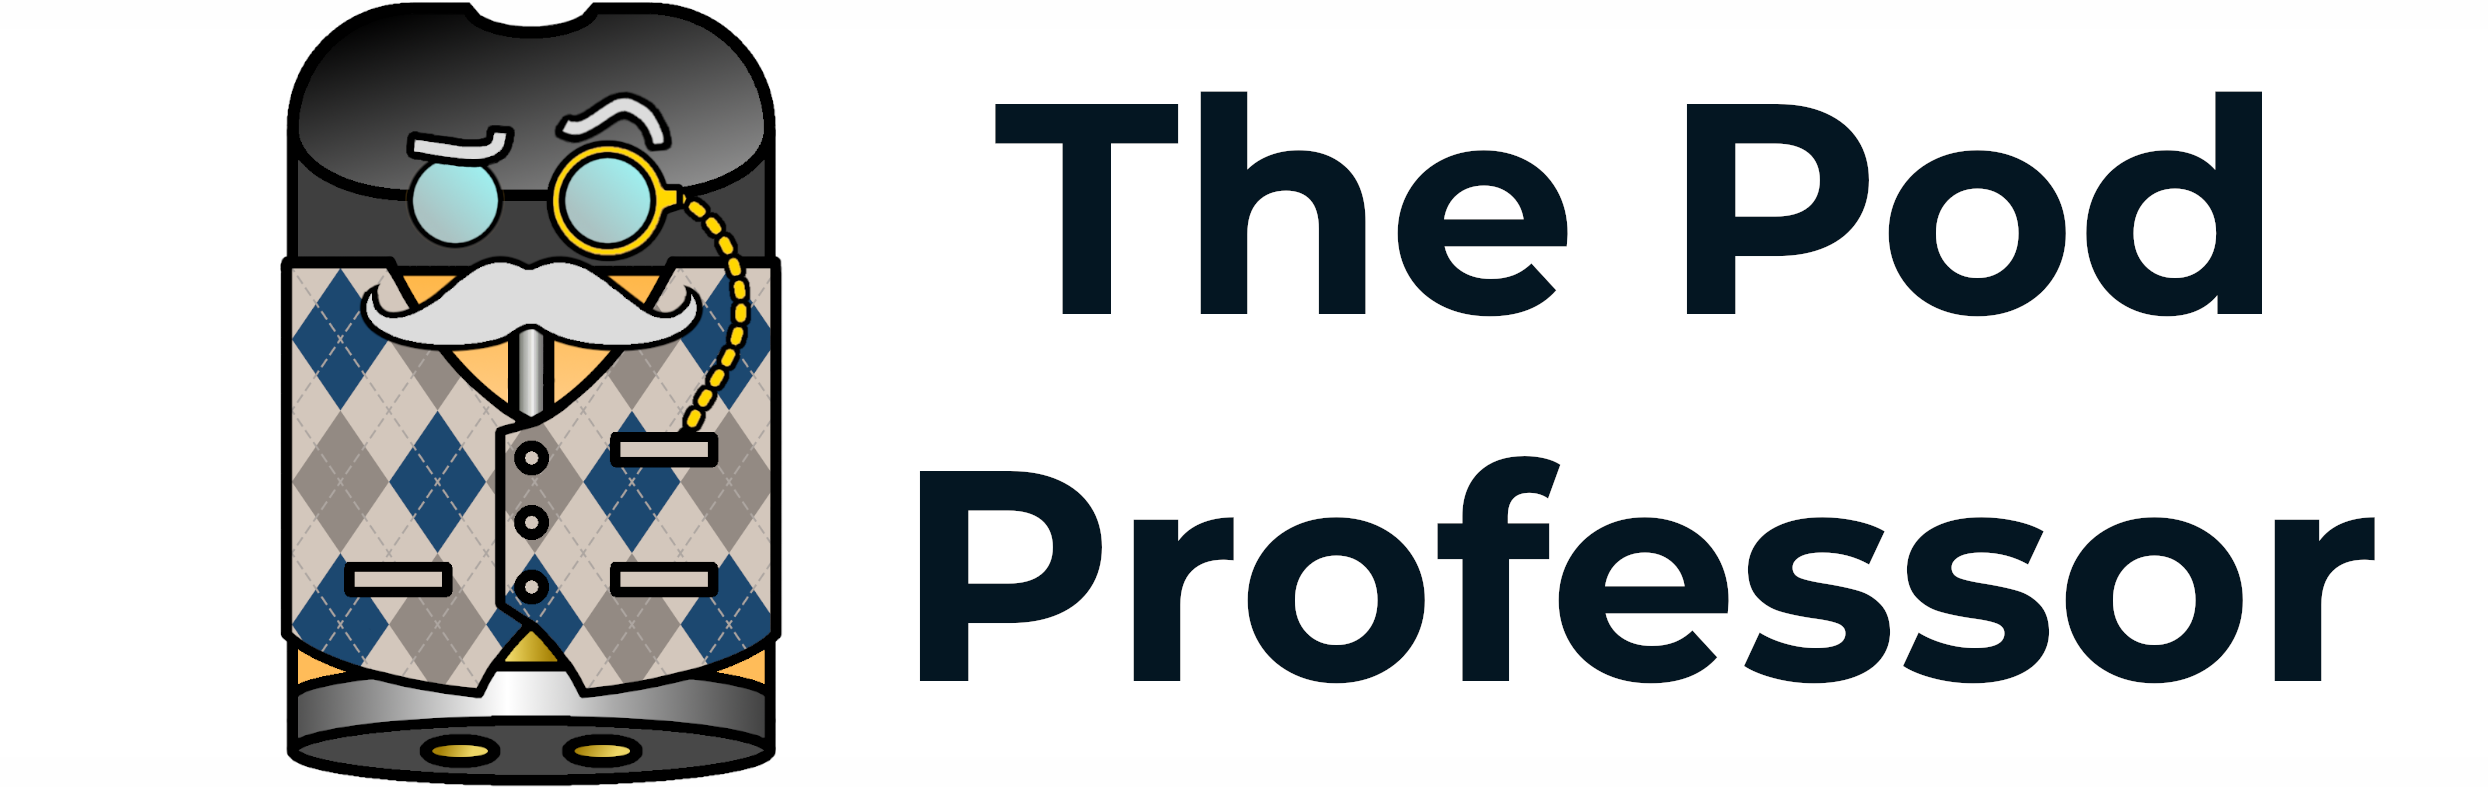 The Pod Professor Title Logo